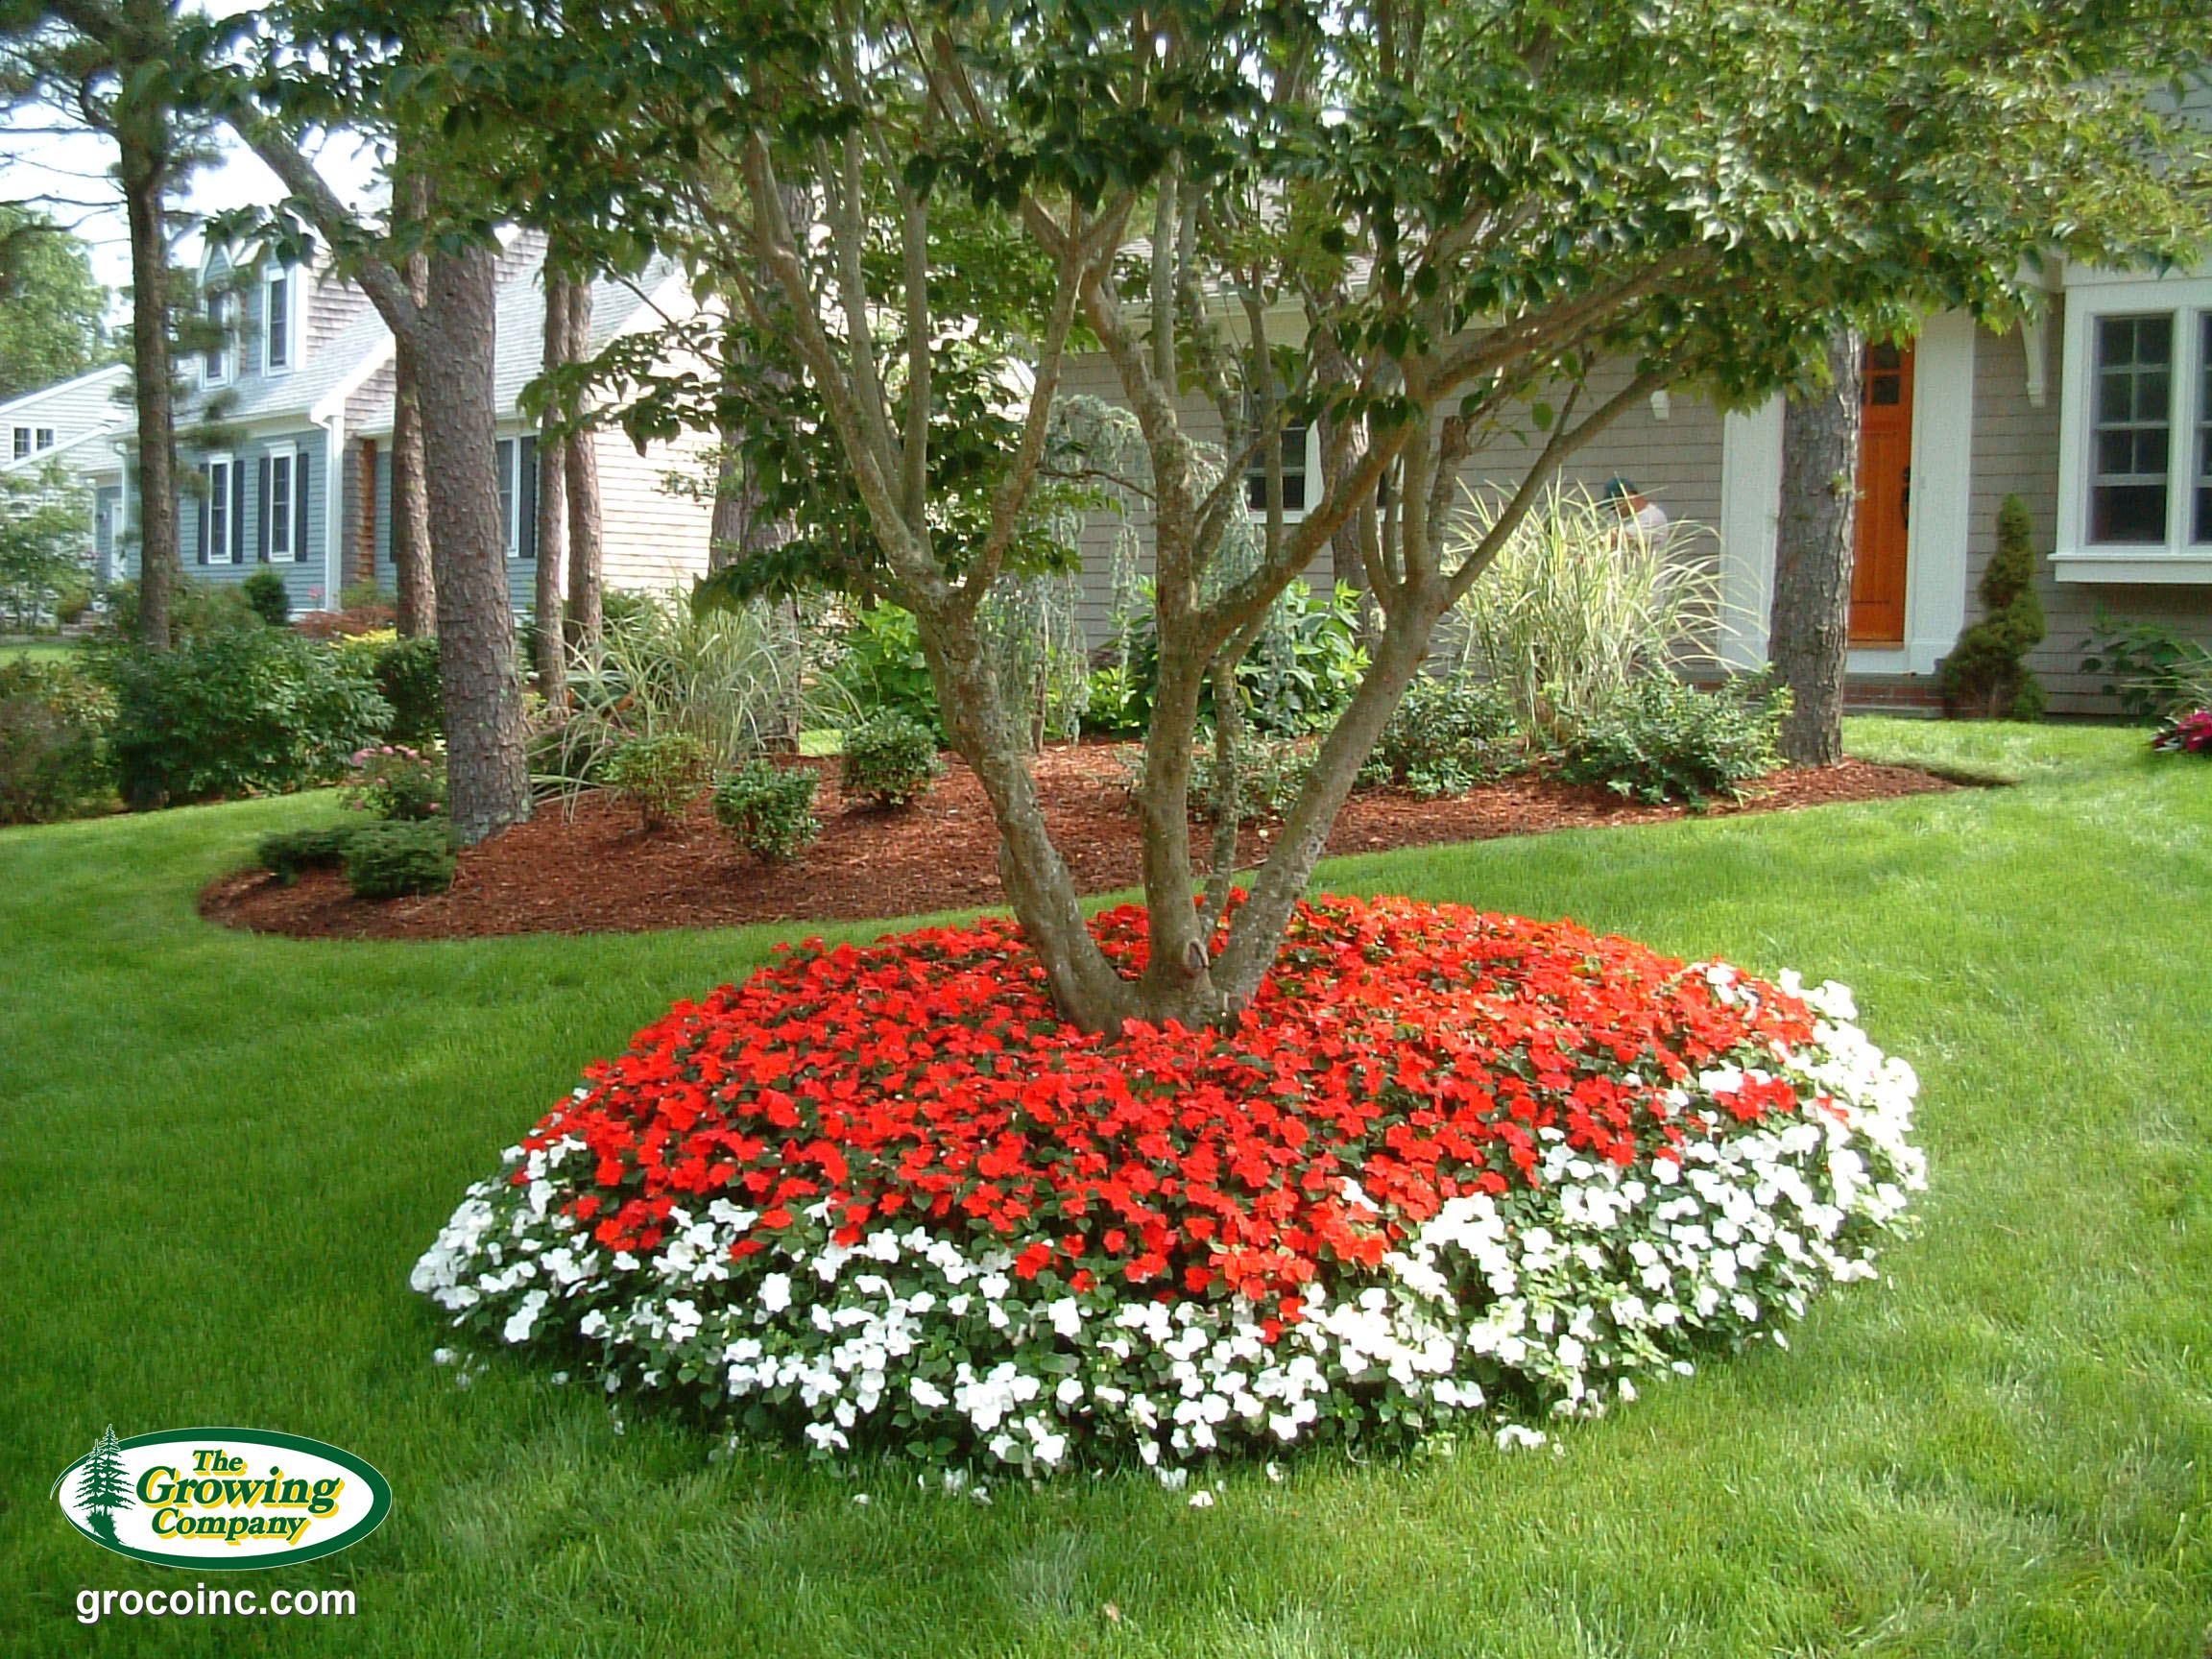 Beautiful Images Of Flower Beds Around Trees Top Collection Of Different Types Of Flowers In The Images Hd